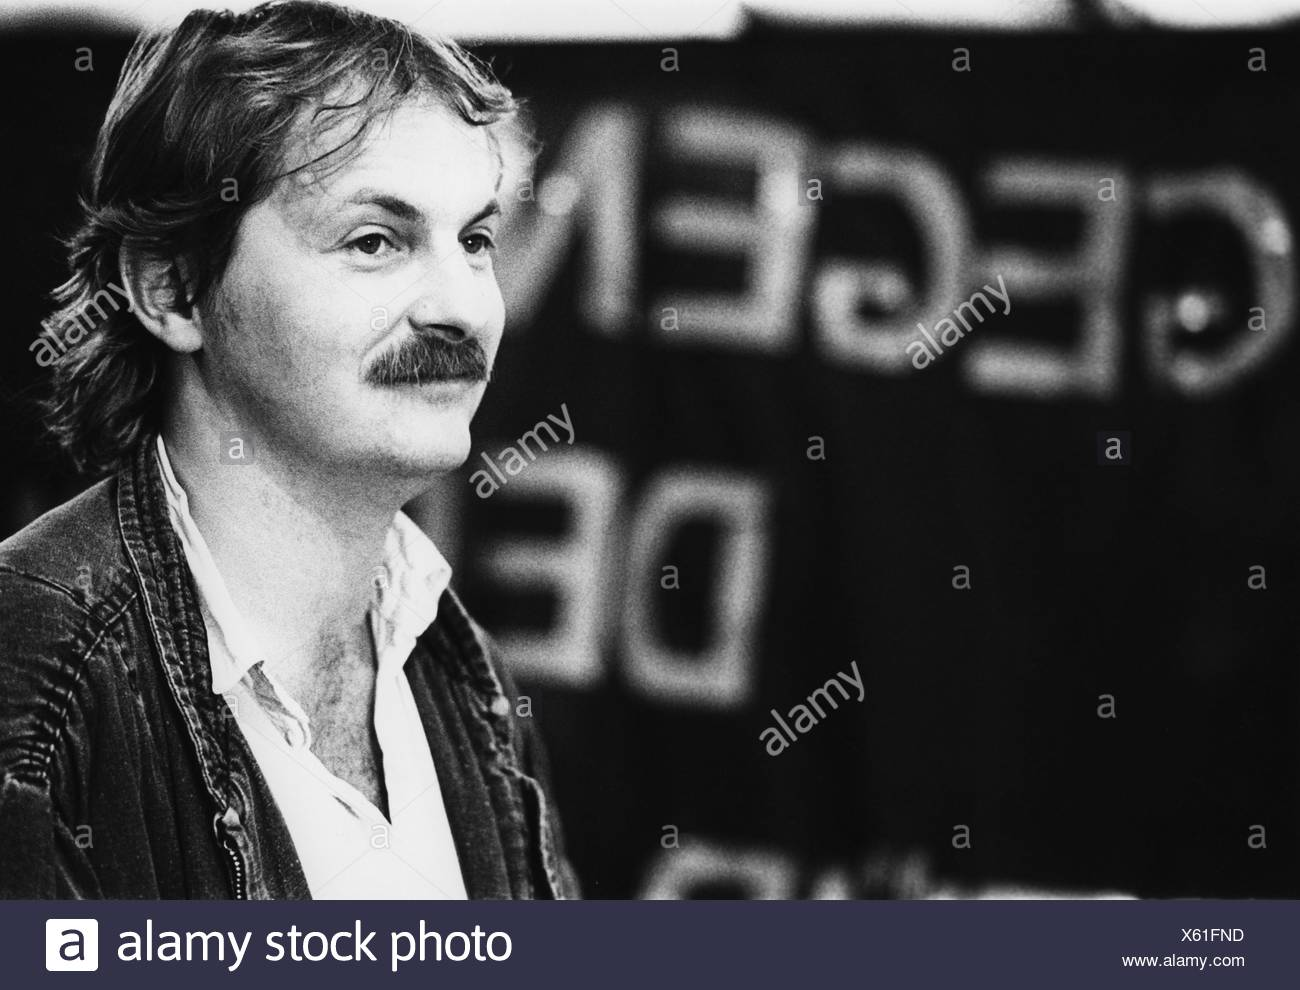 Kleinert, Hubert, German politician (The Greens), portrait, national party convention of the Greens, Hagen, Germany, 22. - 23.6.1985, , Additional-Rights-Clearances-NA - Stock Image